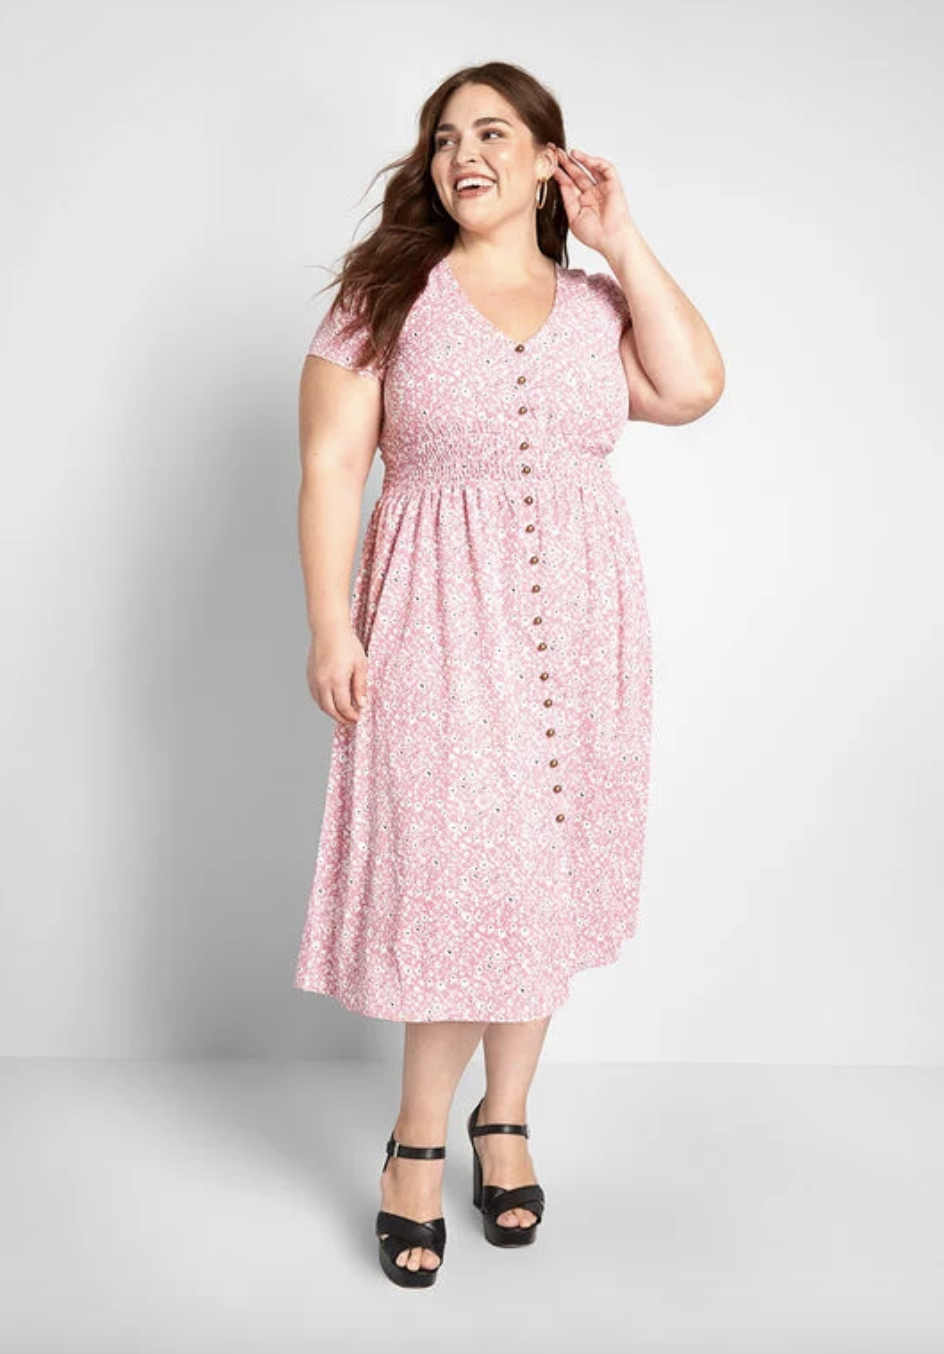 A model in a midi dress with short sleeves that buttons all the way up